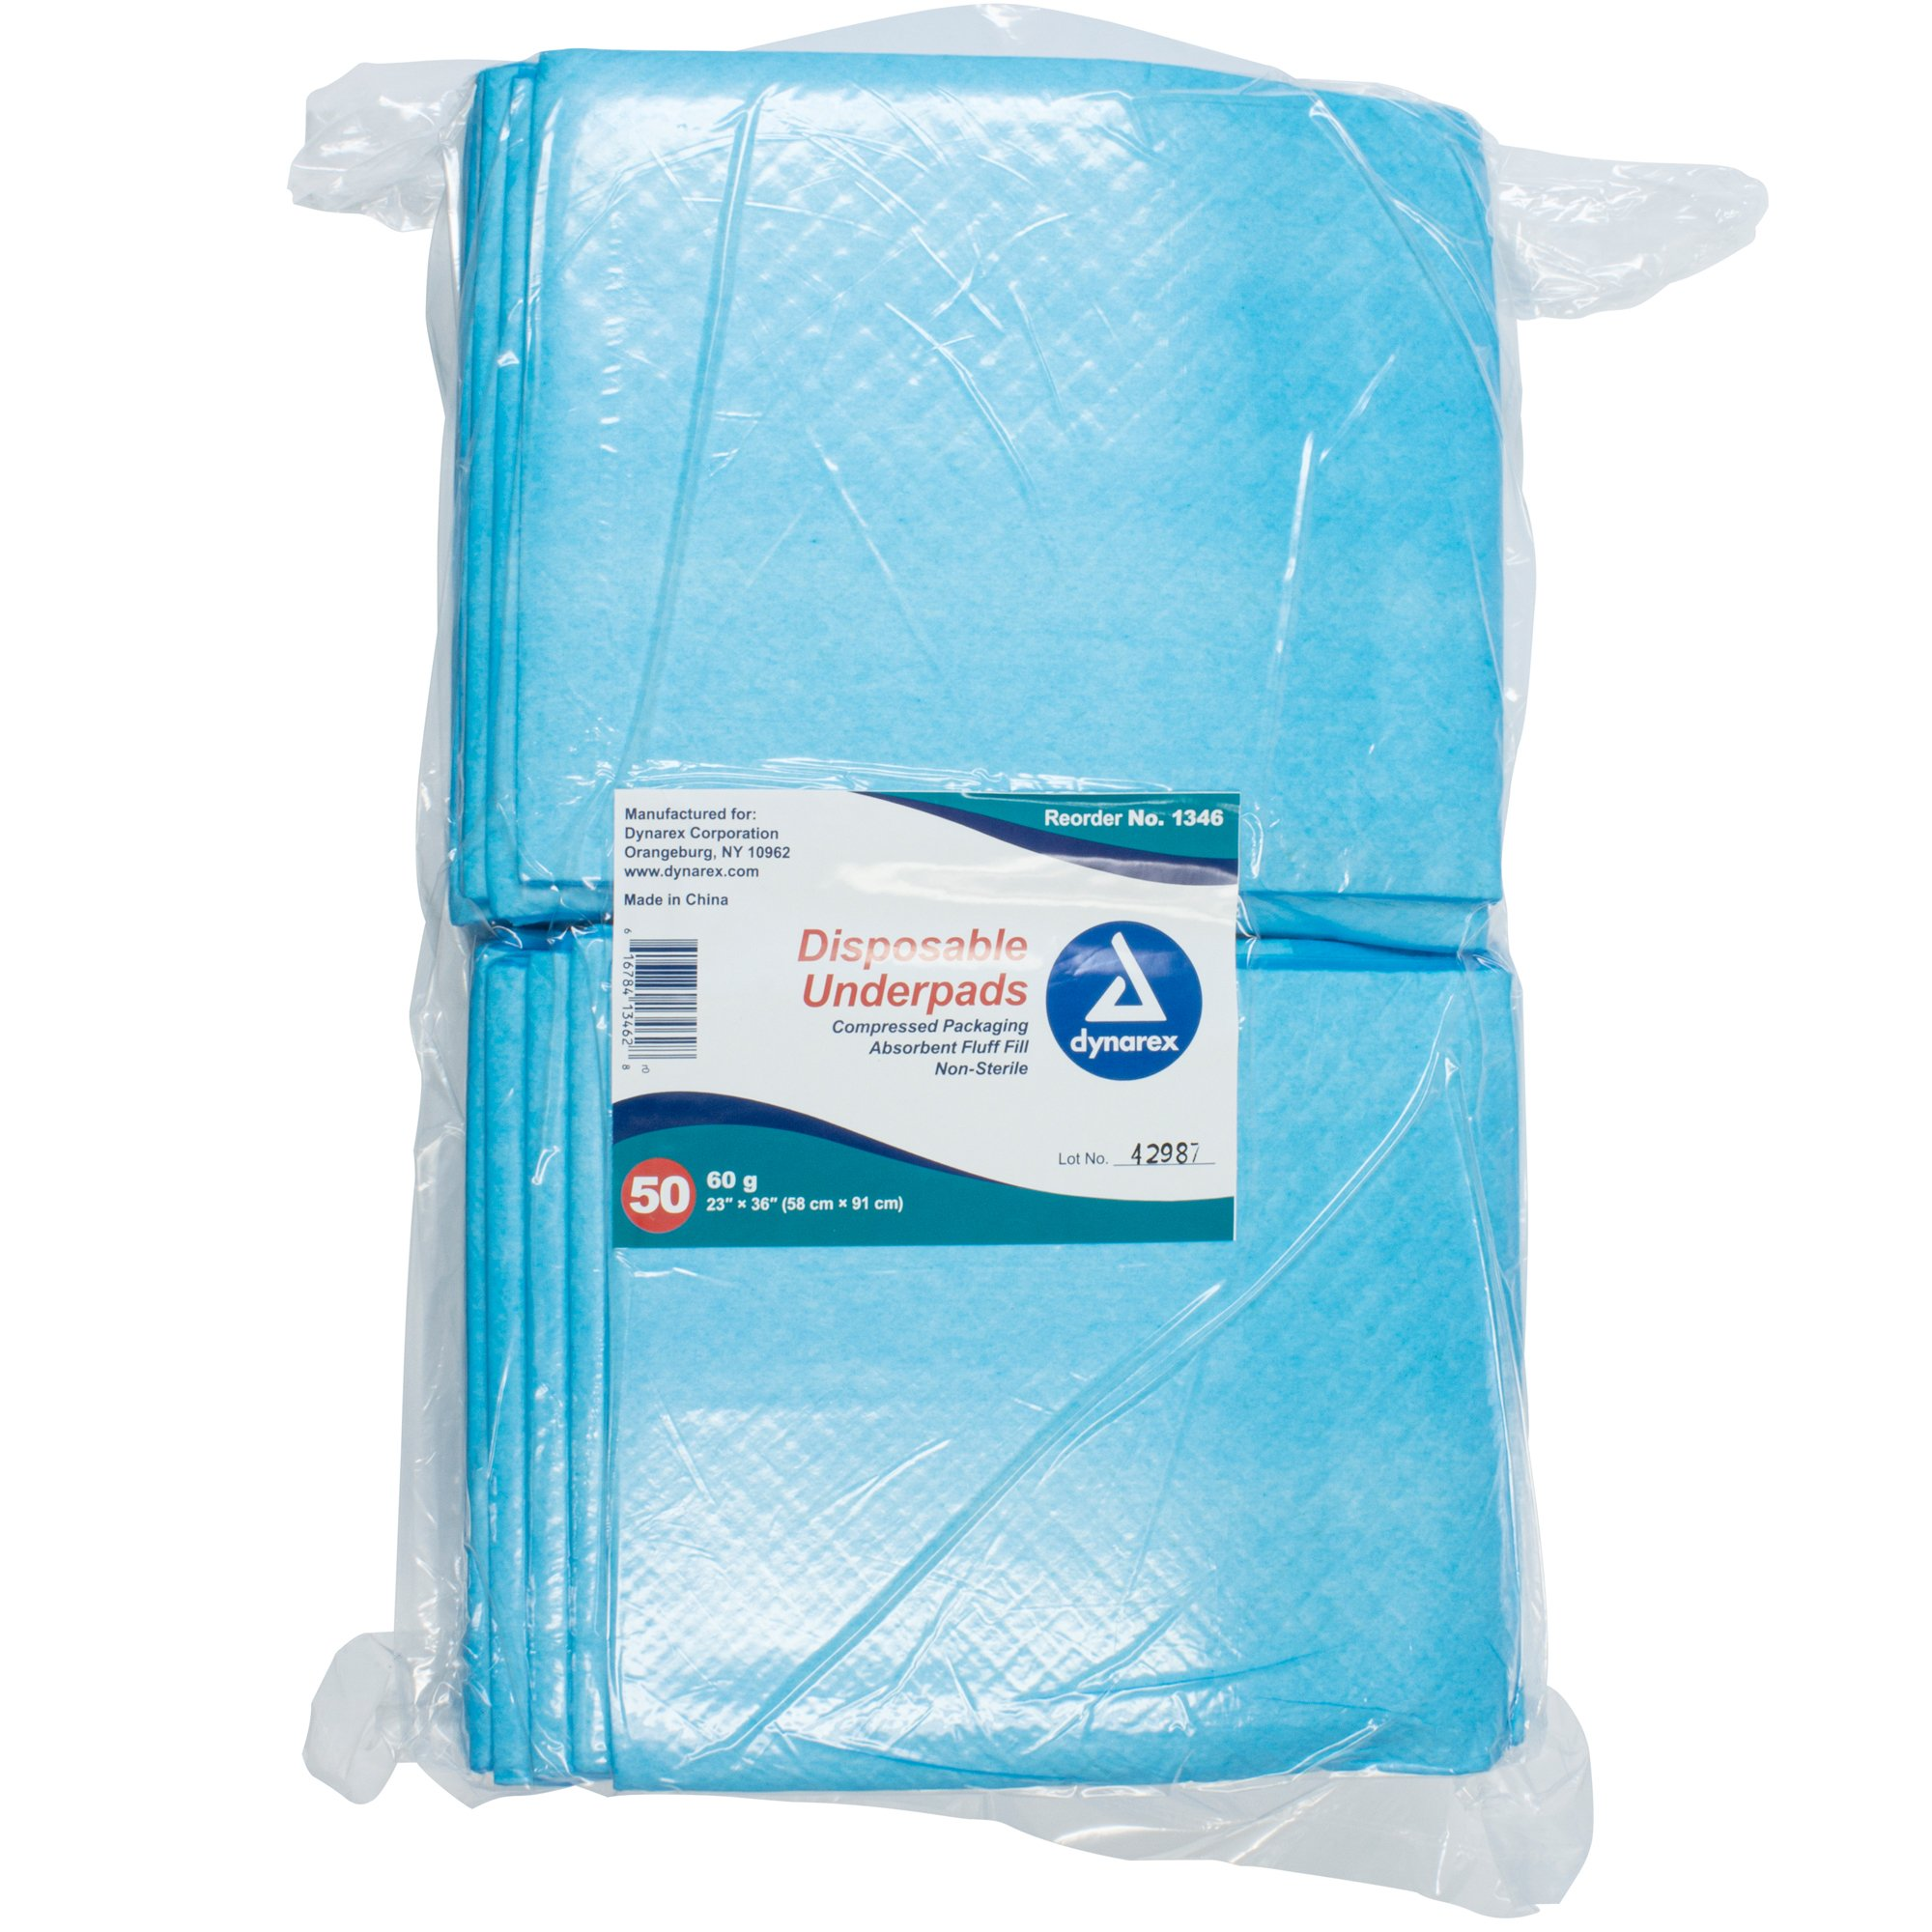 """Dynarex Disposable Underpad, Light Absorbency, 1346, 23 X 36"""" - Bag of 50"""